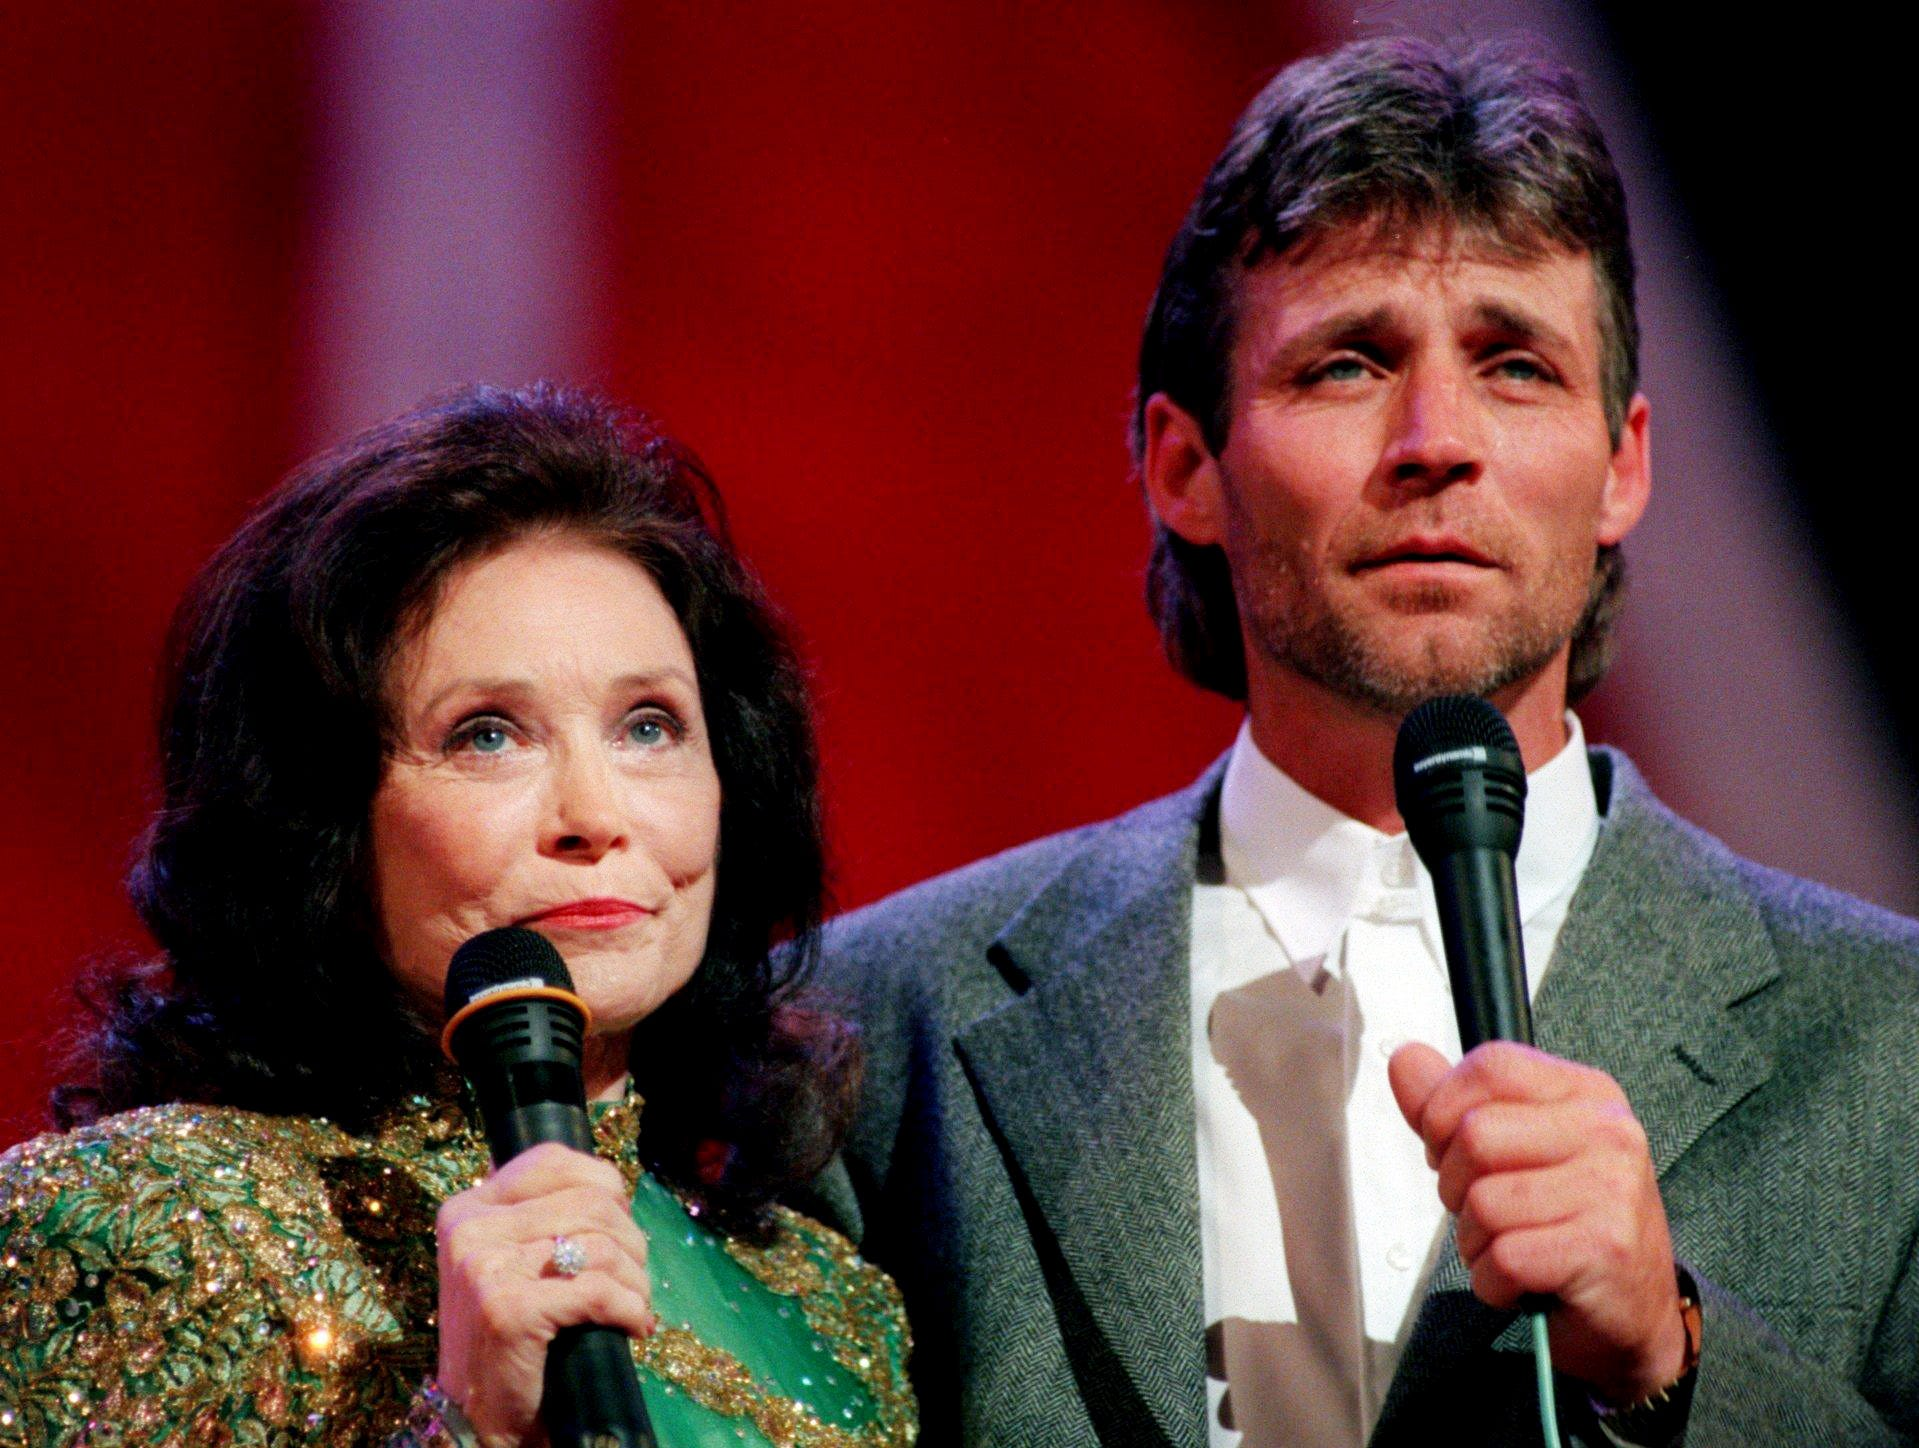 Loretta Lynn, left, is singing with her son, Ernie Lynn, during a special appearance at the Standard Candy part of the Saturday night program of the Grand Ole Opry at the Opry House May 2, 1998.